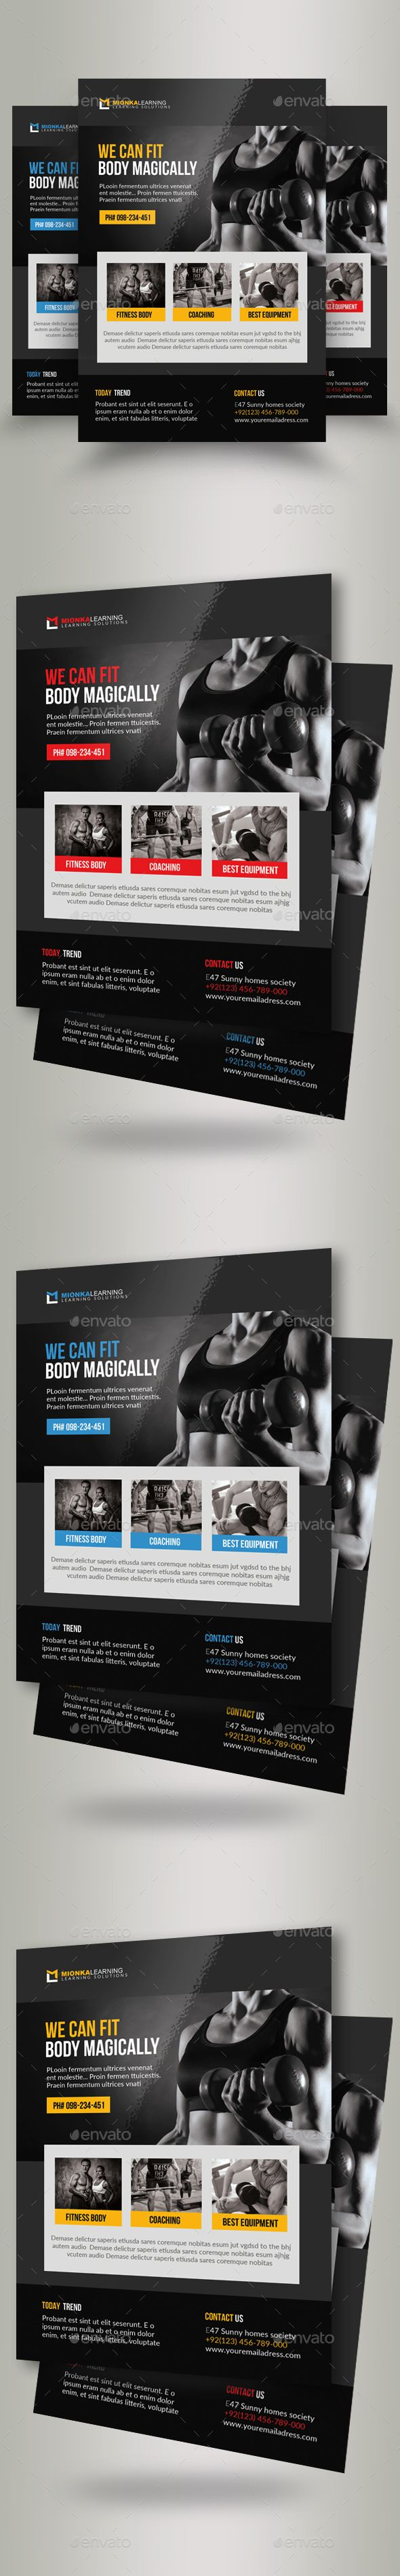 Body Fitness Club #Flyer Template - Corporate #Flyers Download here:  https://graphicriver.net/item/body-fitness-club-flyer-template/19722373?ref=alena994